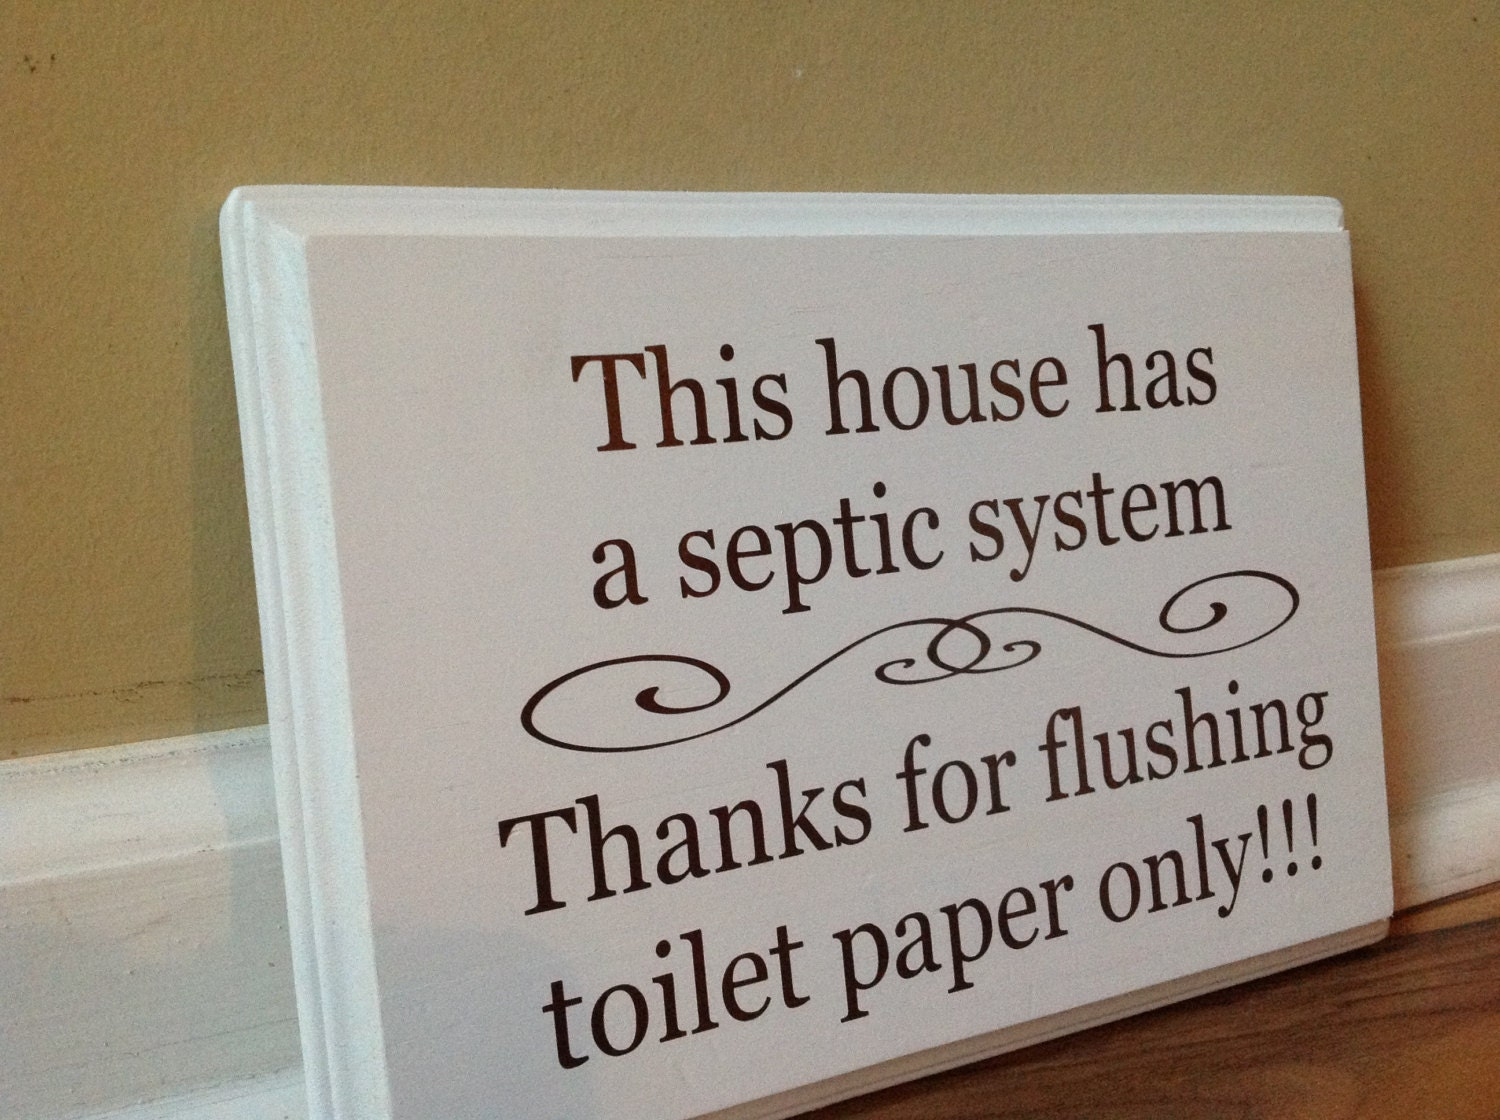 This house has a septic system Septic System Rules Wooden Sign Plaque Do Not Flush Sign Bathroom Decor Funny Bathroom Do Not Dispose. Septic system   Etsy